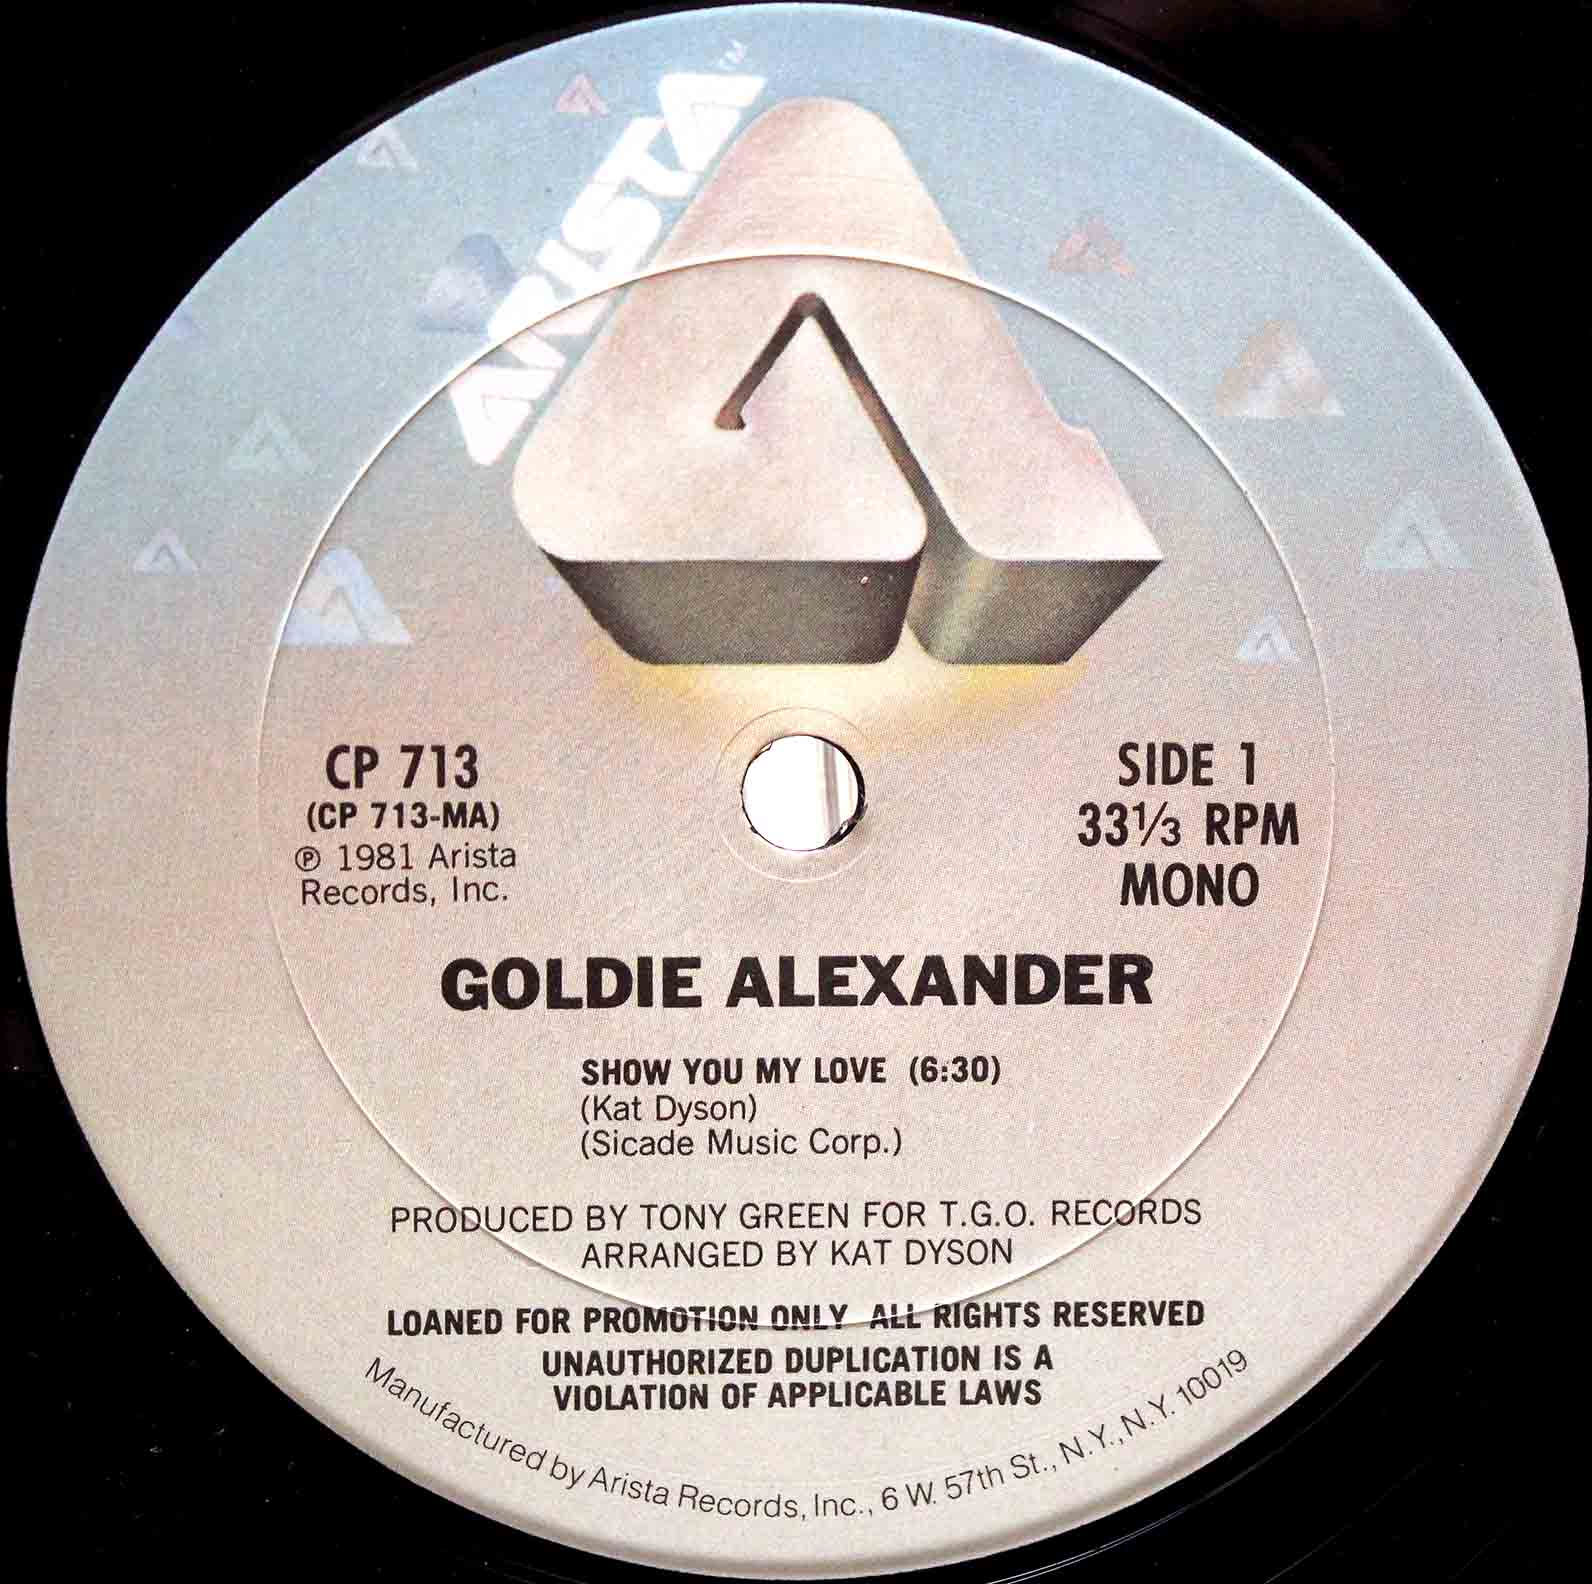 Goldie Alexander ‎- show you my love 03